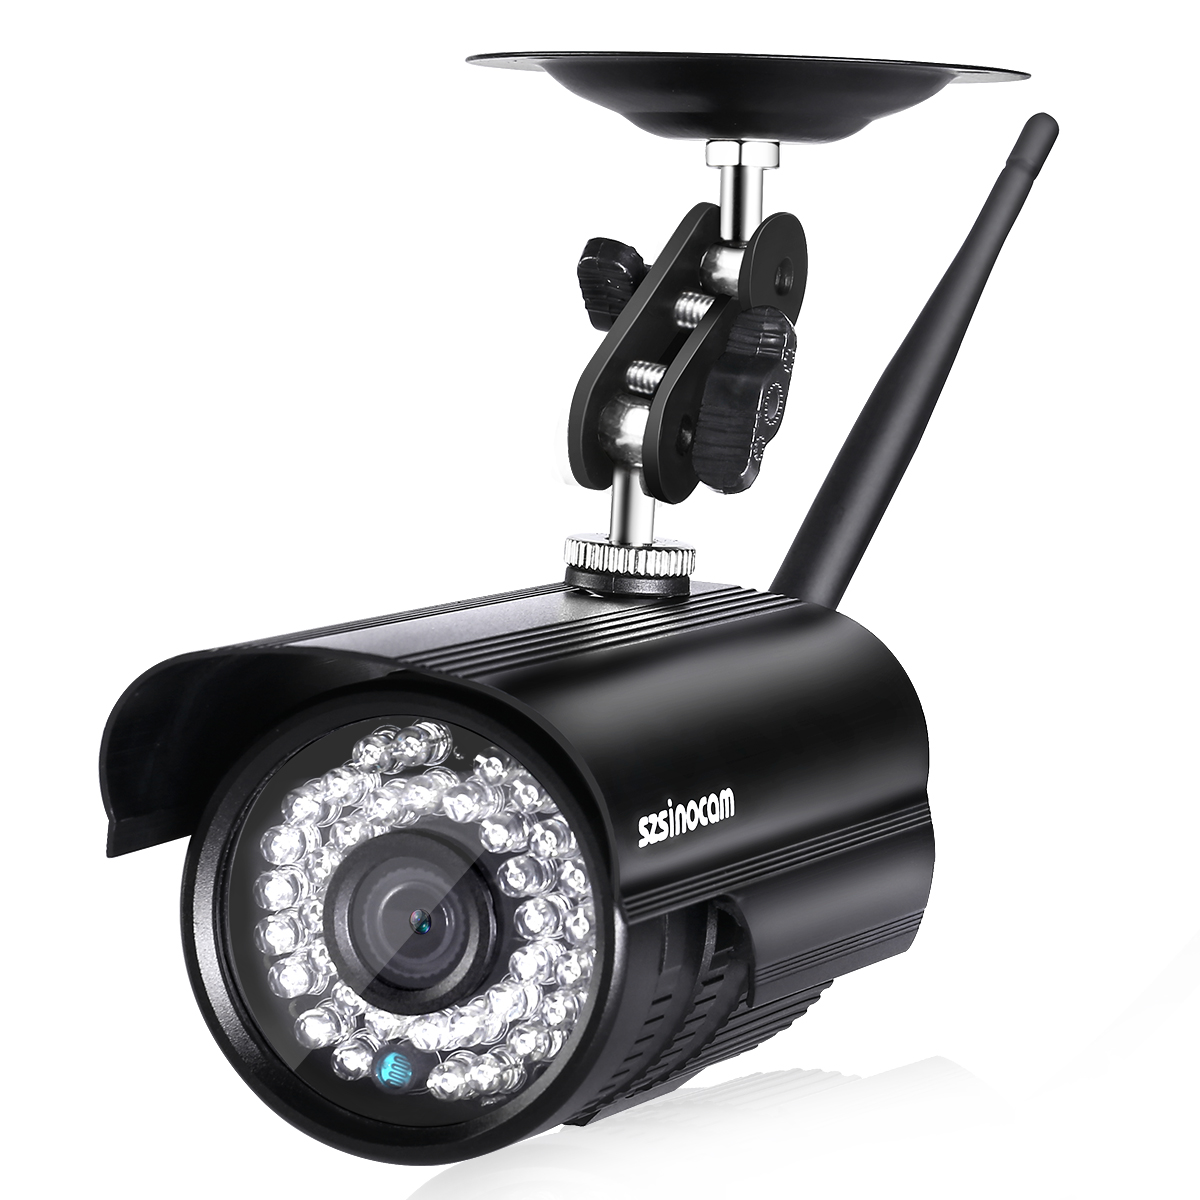 Szsinocam 720P Waterproof WLAN Wireleess 1.0 Megapixel Security CCTV WiFi IP Camera